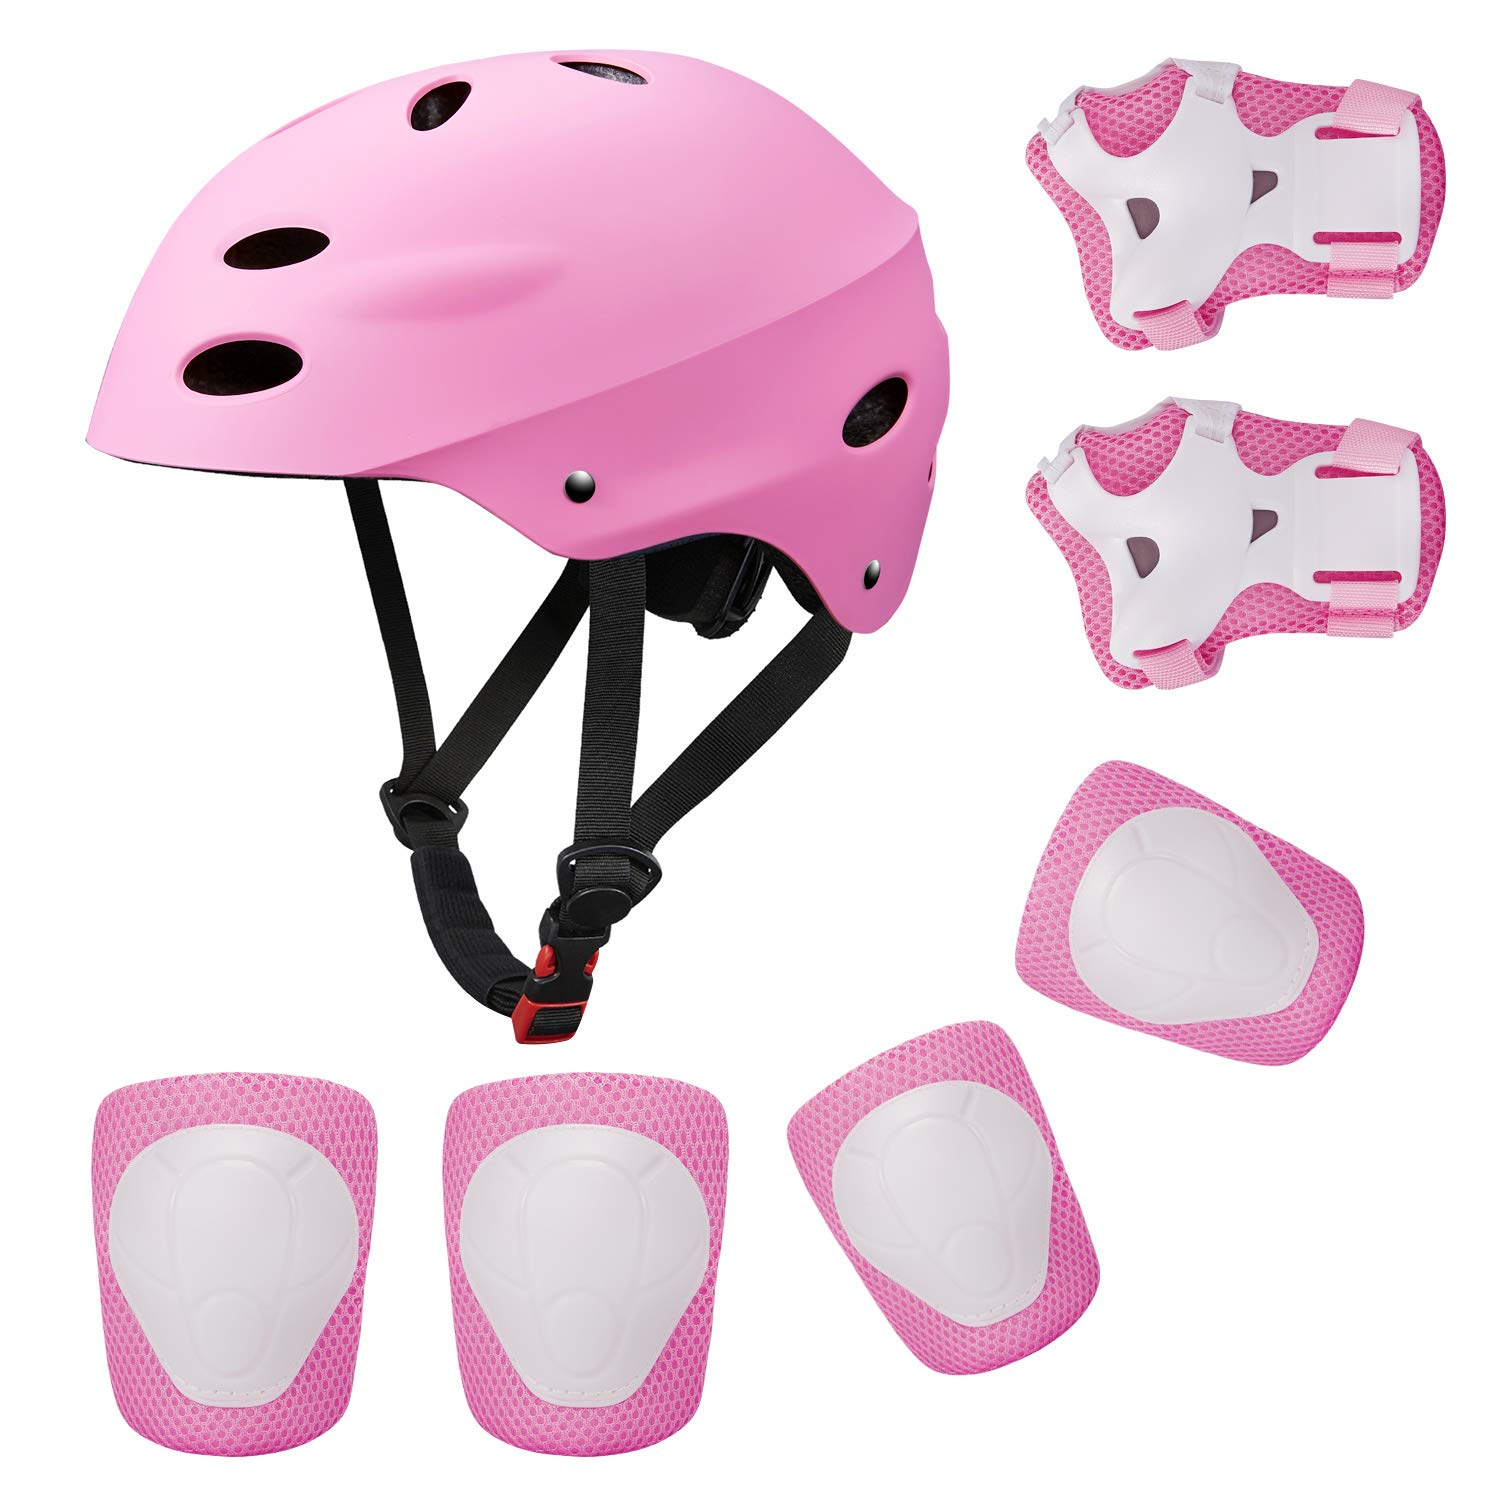 Kids Sports Knees Elbows Wrists Head Support Protection Helmet Set for Unisex Toddler Children Extreme Sports Youth Roller Bicycle BMX Bike Skateboard Protector Guards Pads -7Pcs(Pink)